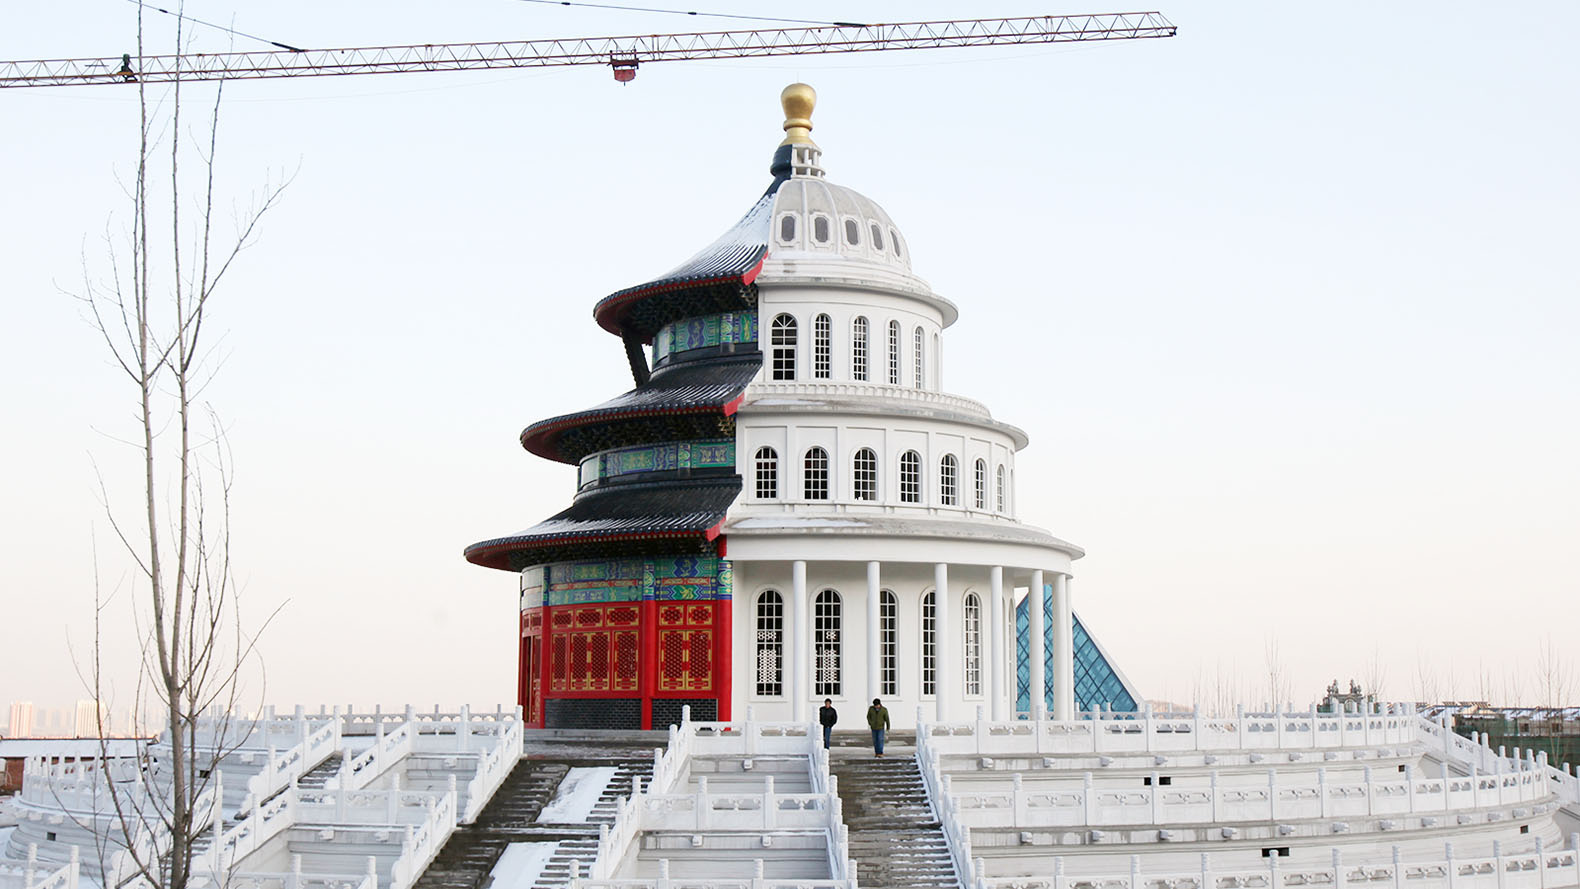 China officially bans 'weird' architecture